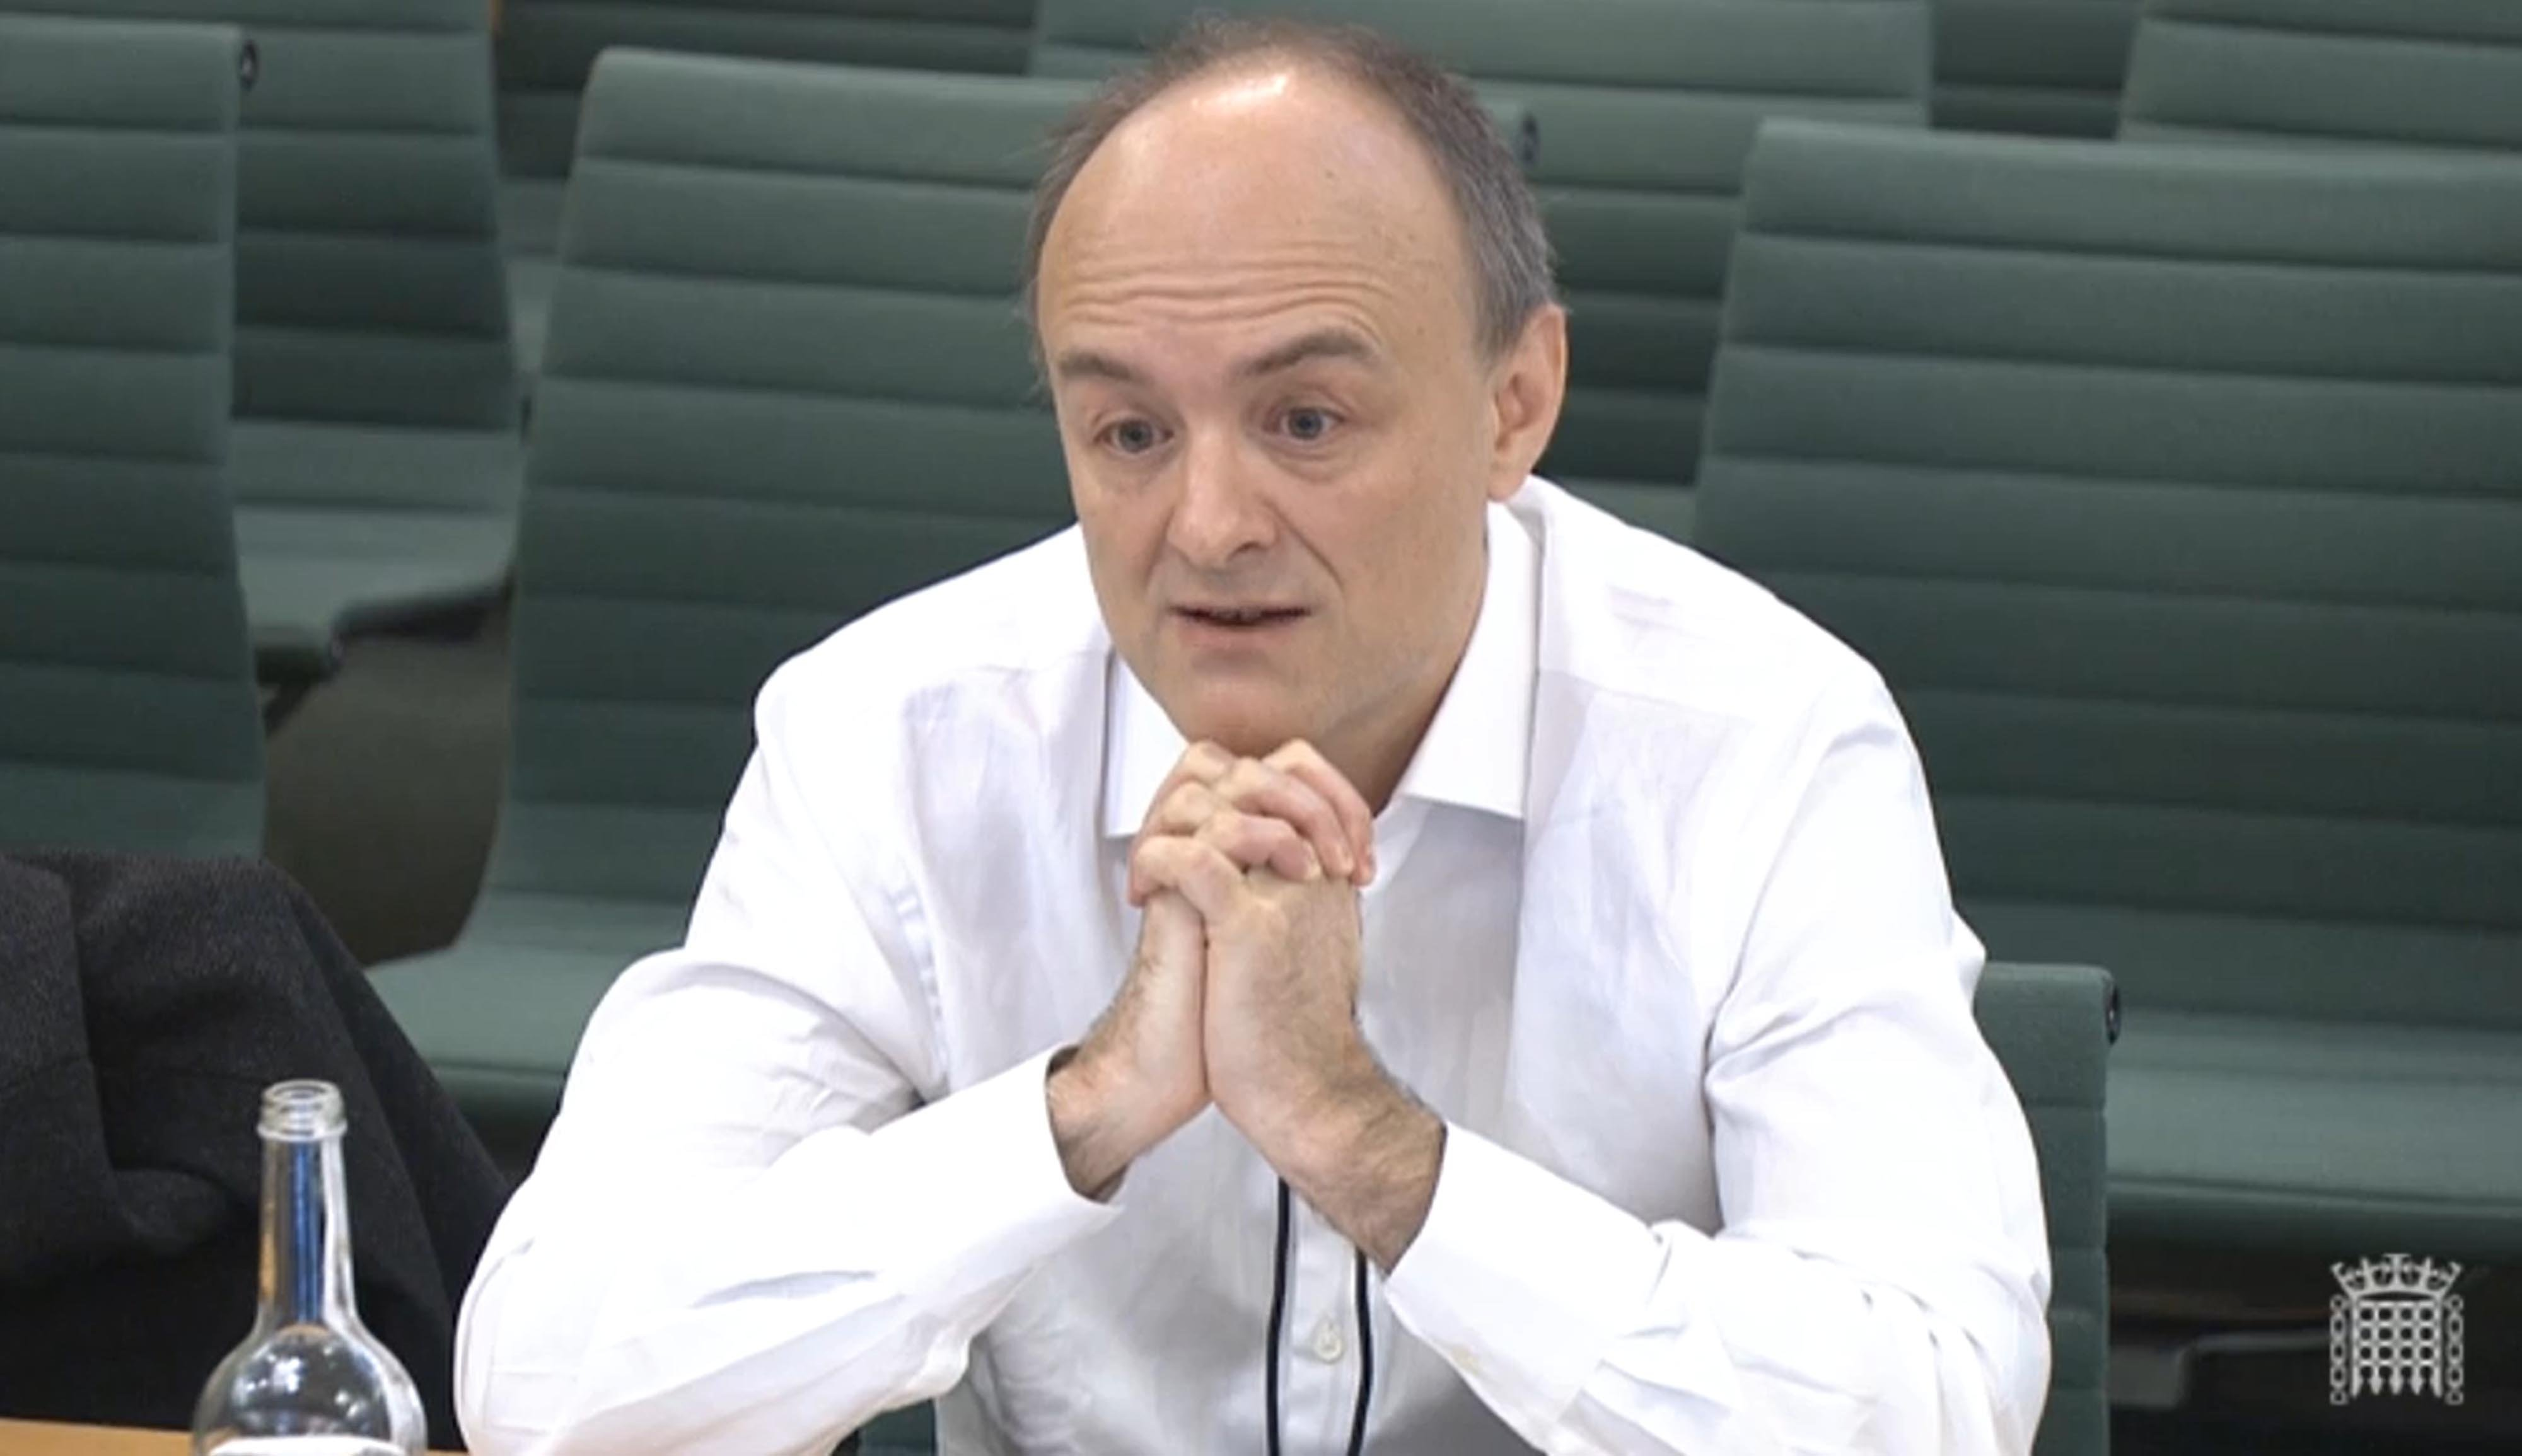 Cummings says Covid response held back by EU and 'smoking ruin' department